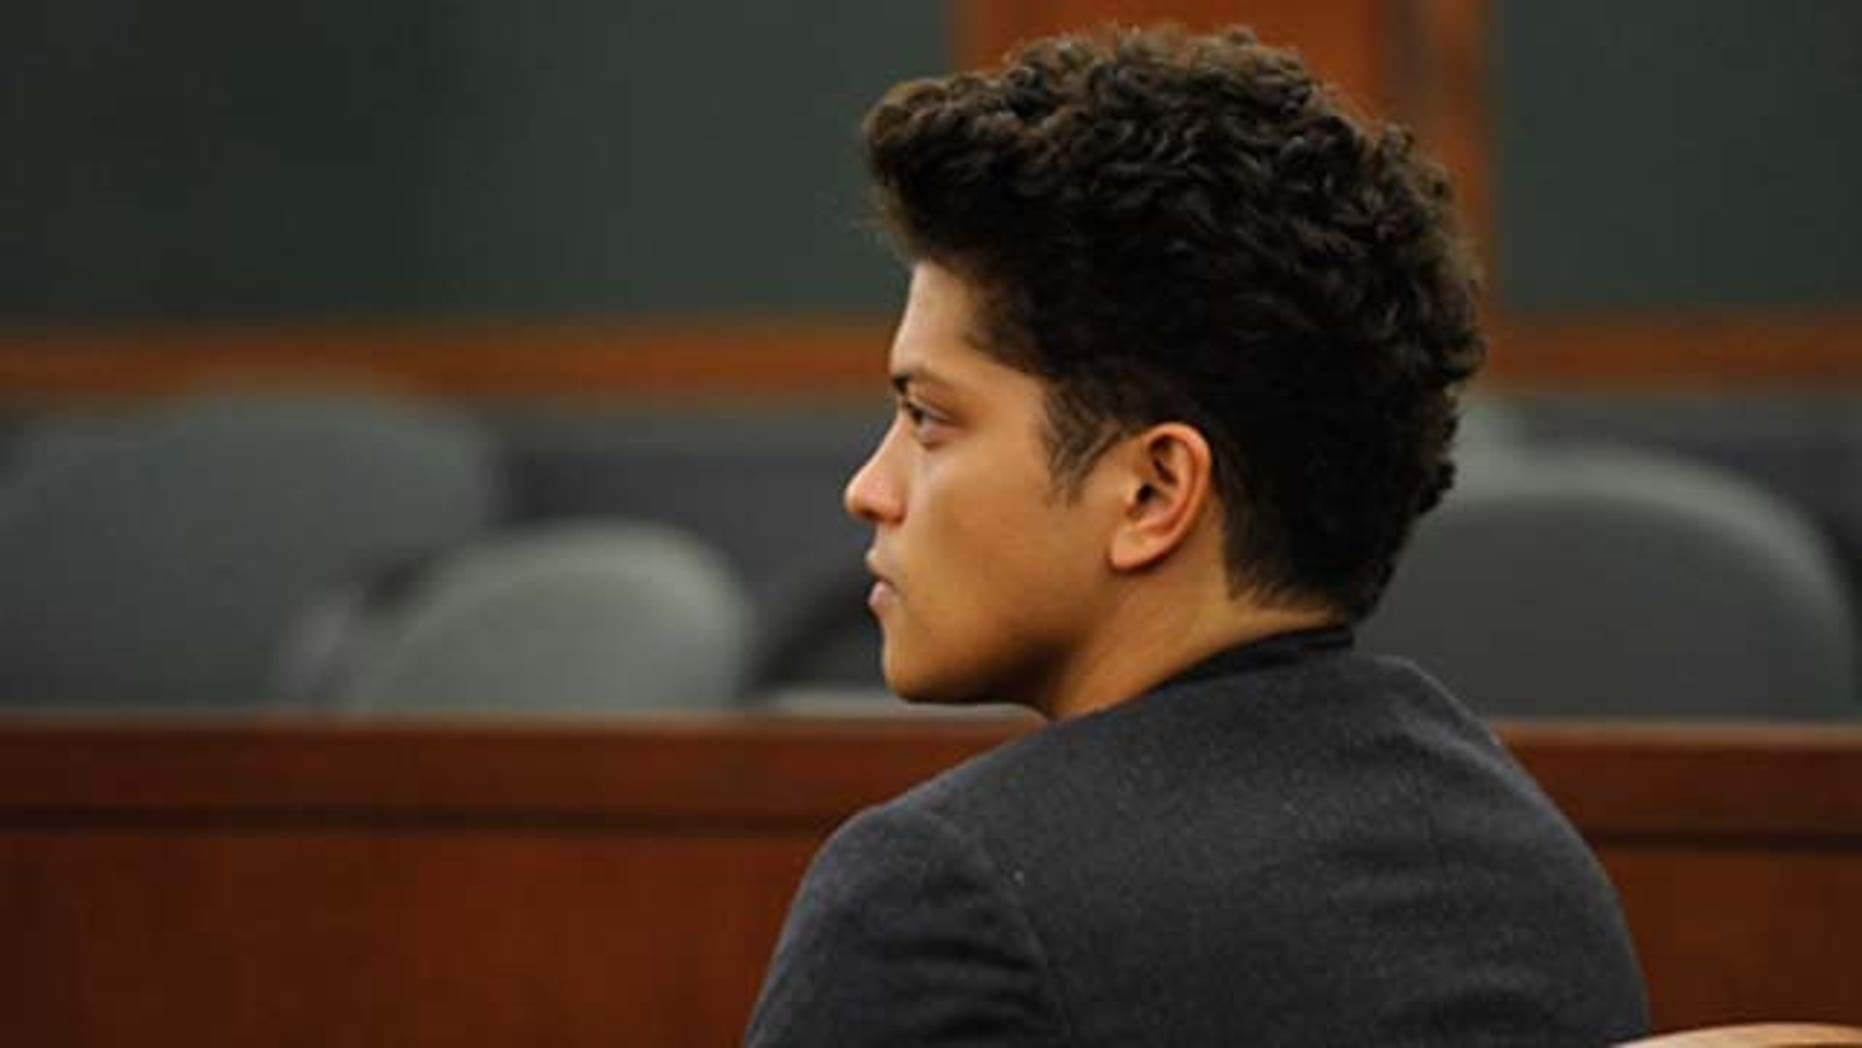 Recording artist Bruno Mars appears at the Clark County Regional Justice Center on a felony drug possession charge February 16, 2011 in Las Vegas, Nevada. Mars, whose legal name is Peter Hernandez, was arrested last September at the Hard Rock Hotel & Casino for possession of cocaine. Mars pleaded guilty to the charge and was placed on a year of informal probation as part of a deal. He will have to pay a USD 2,000 fine, perform 200 hours of community service, and attend drug counseling. If he completes the terms of the agreement, the charge will be dismissed.